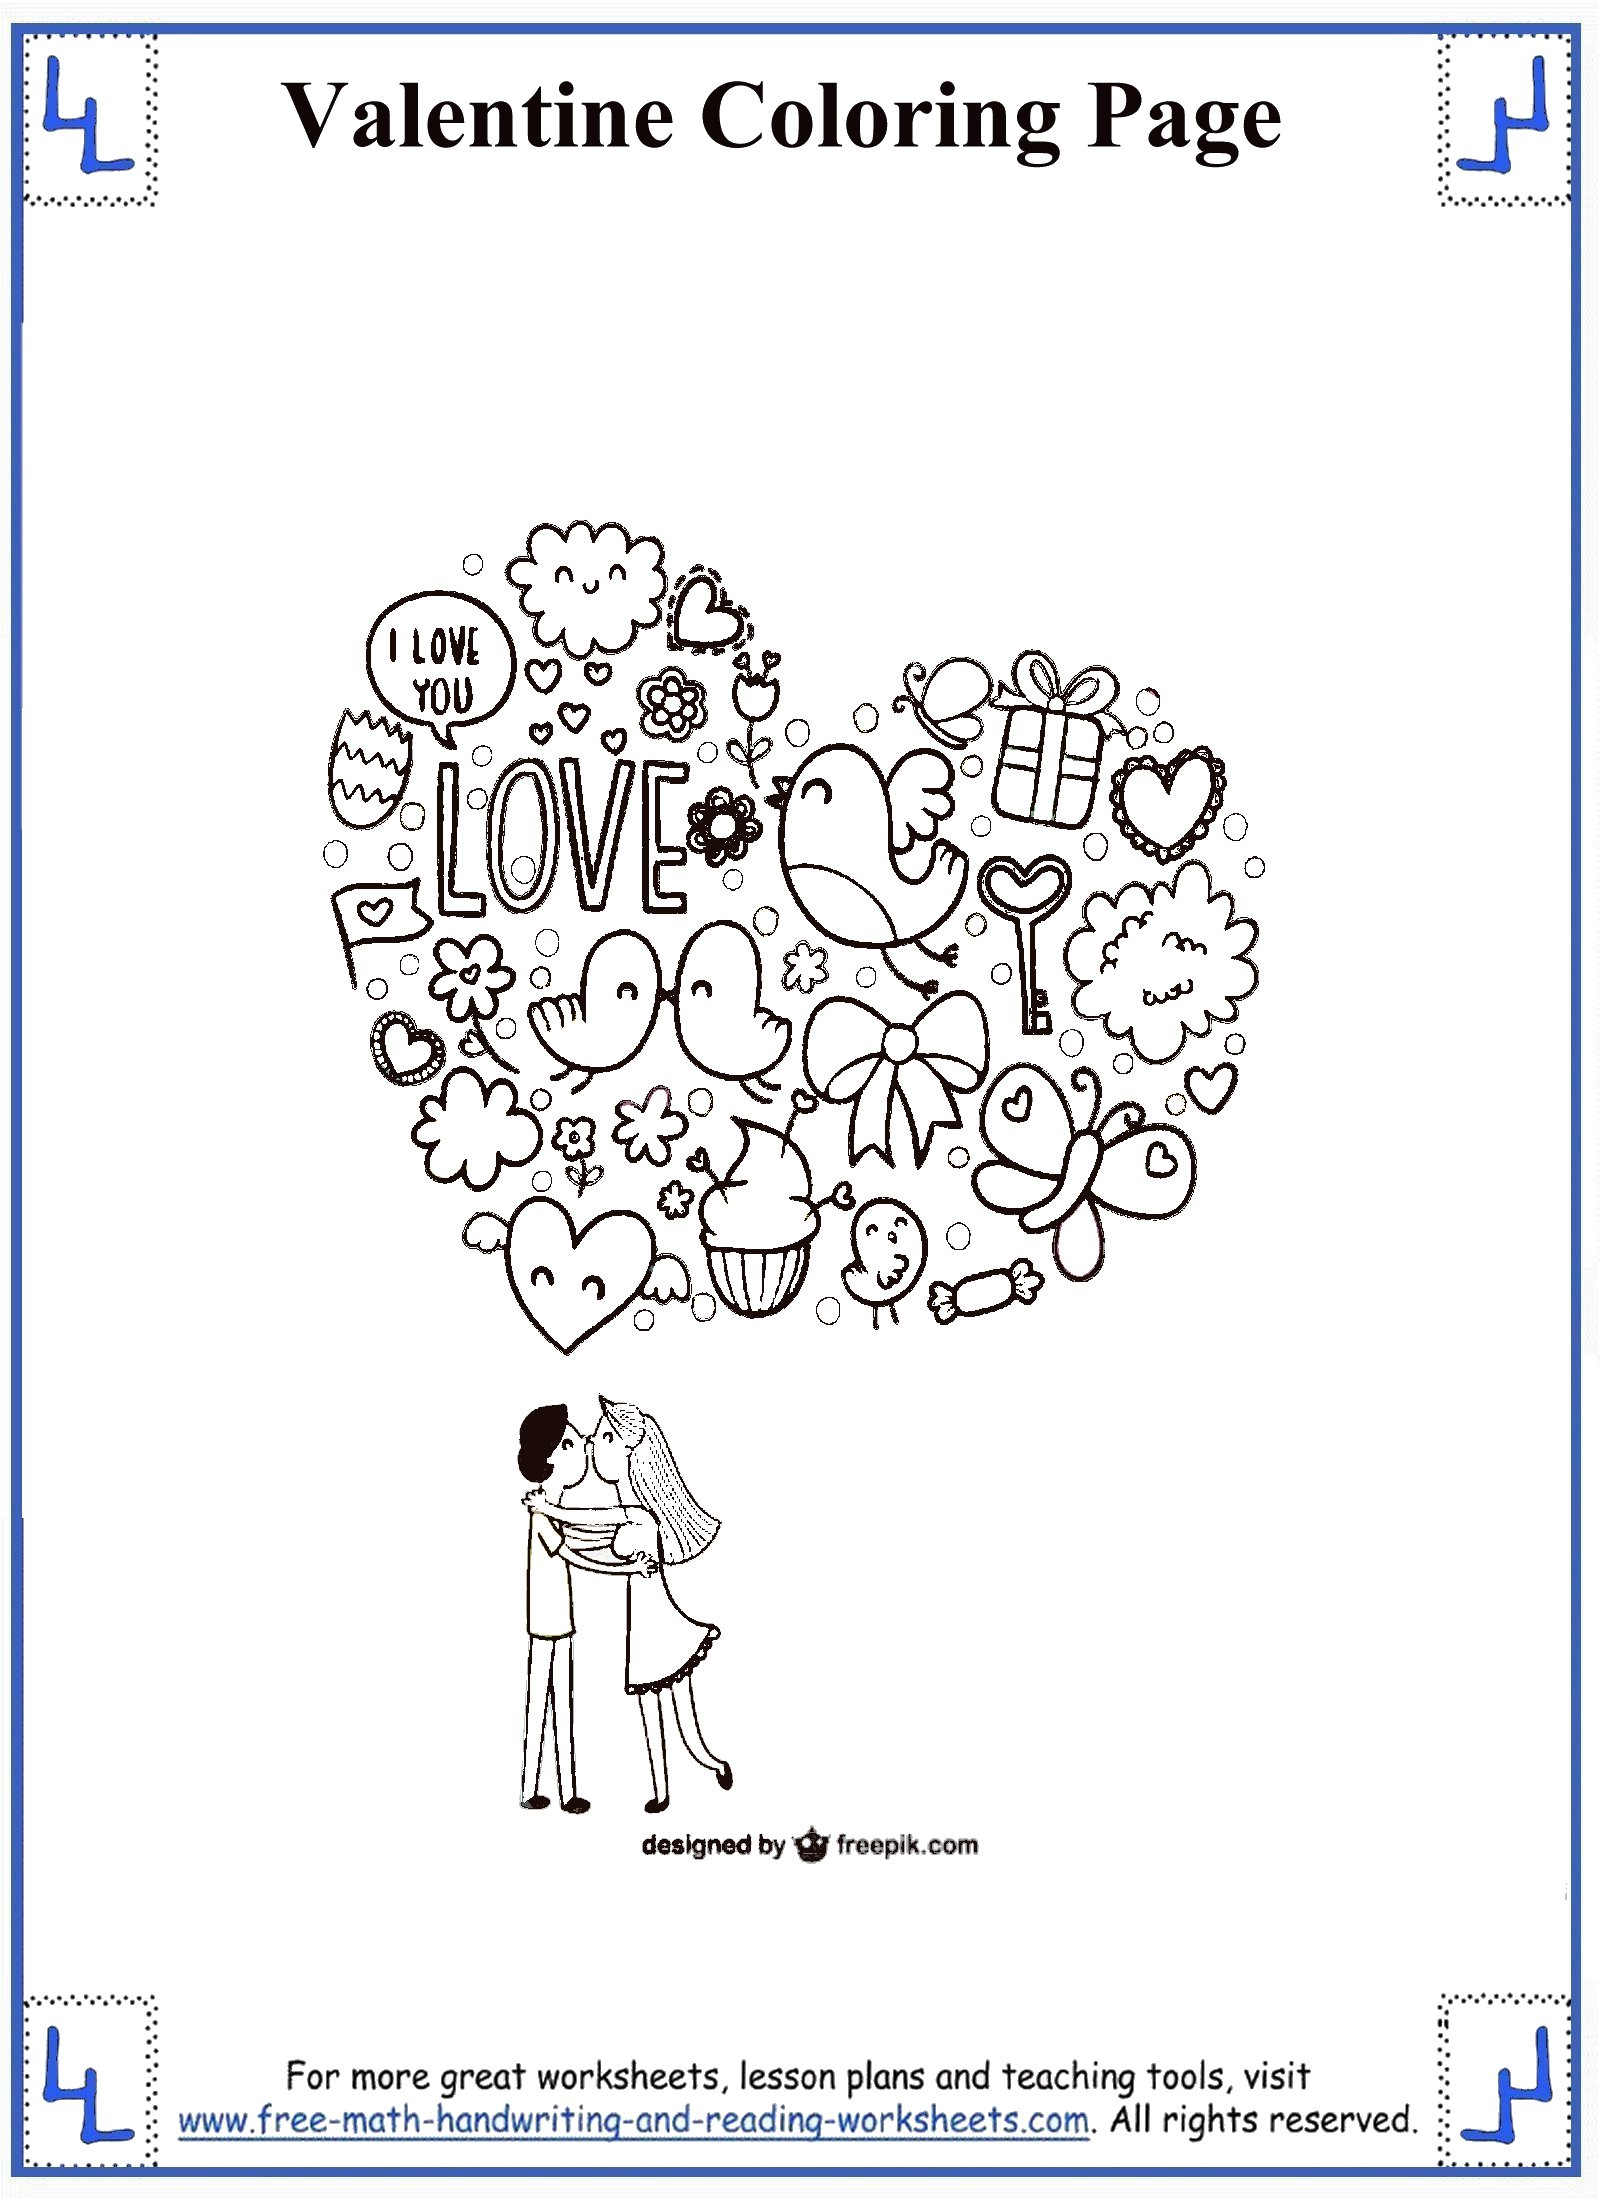 Valentines Day Coloring Pages on rhyming worksheets